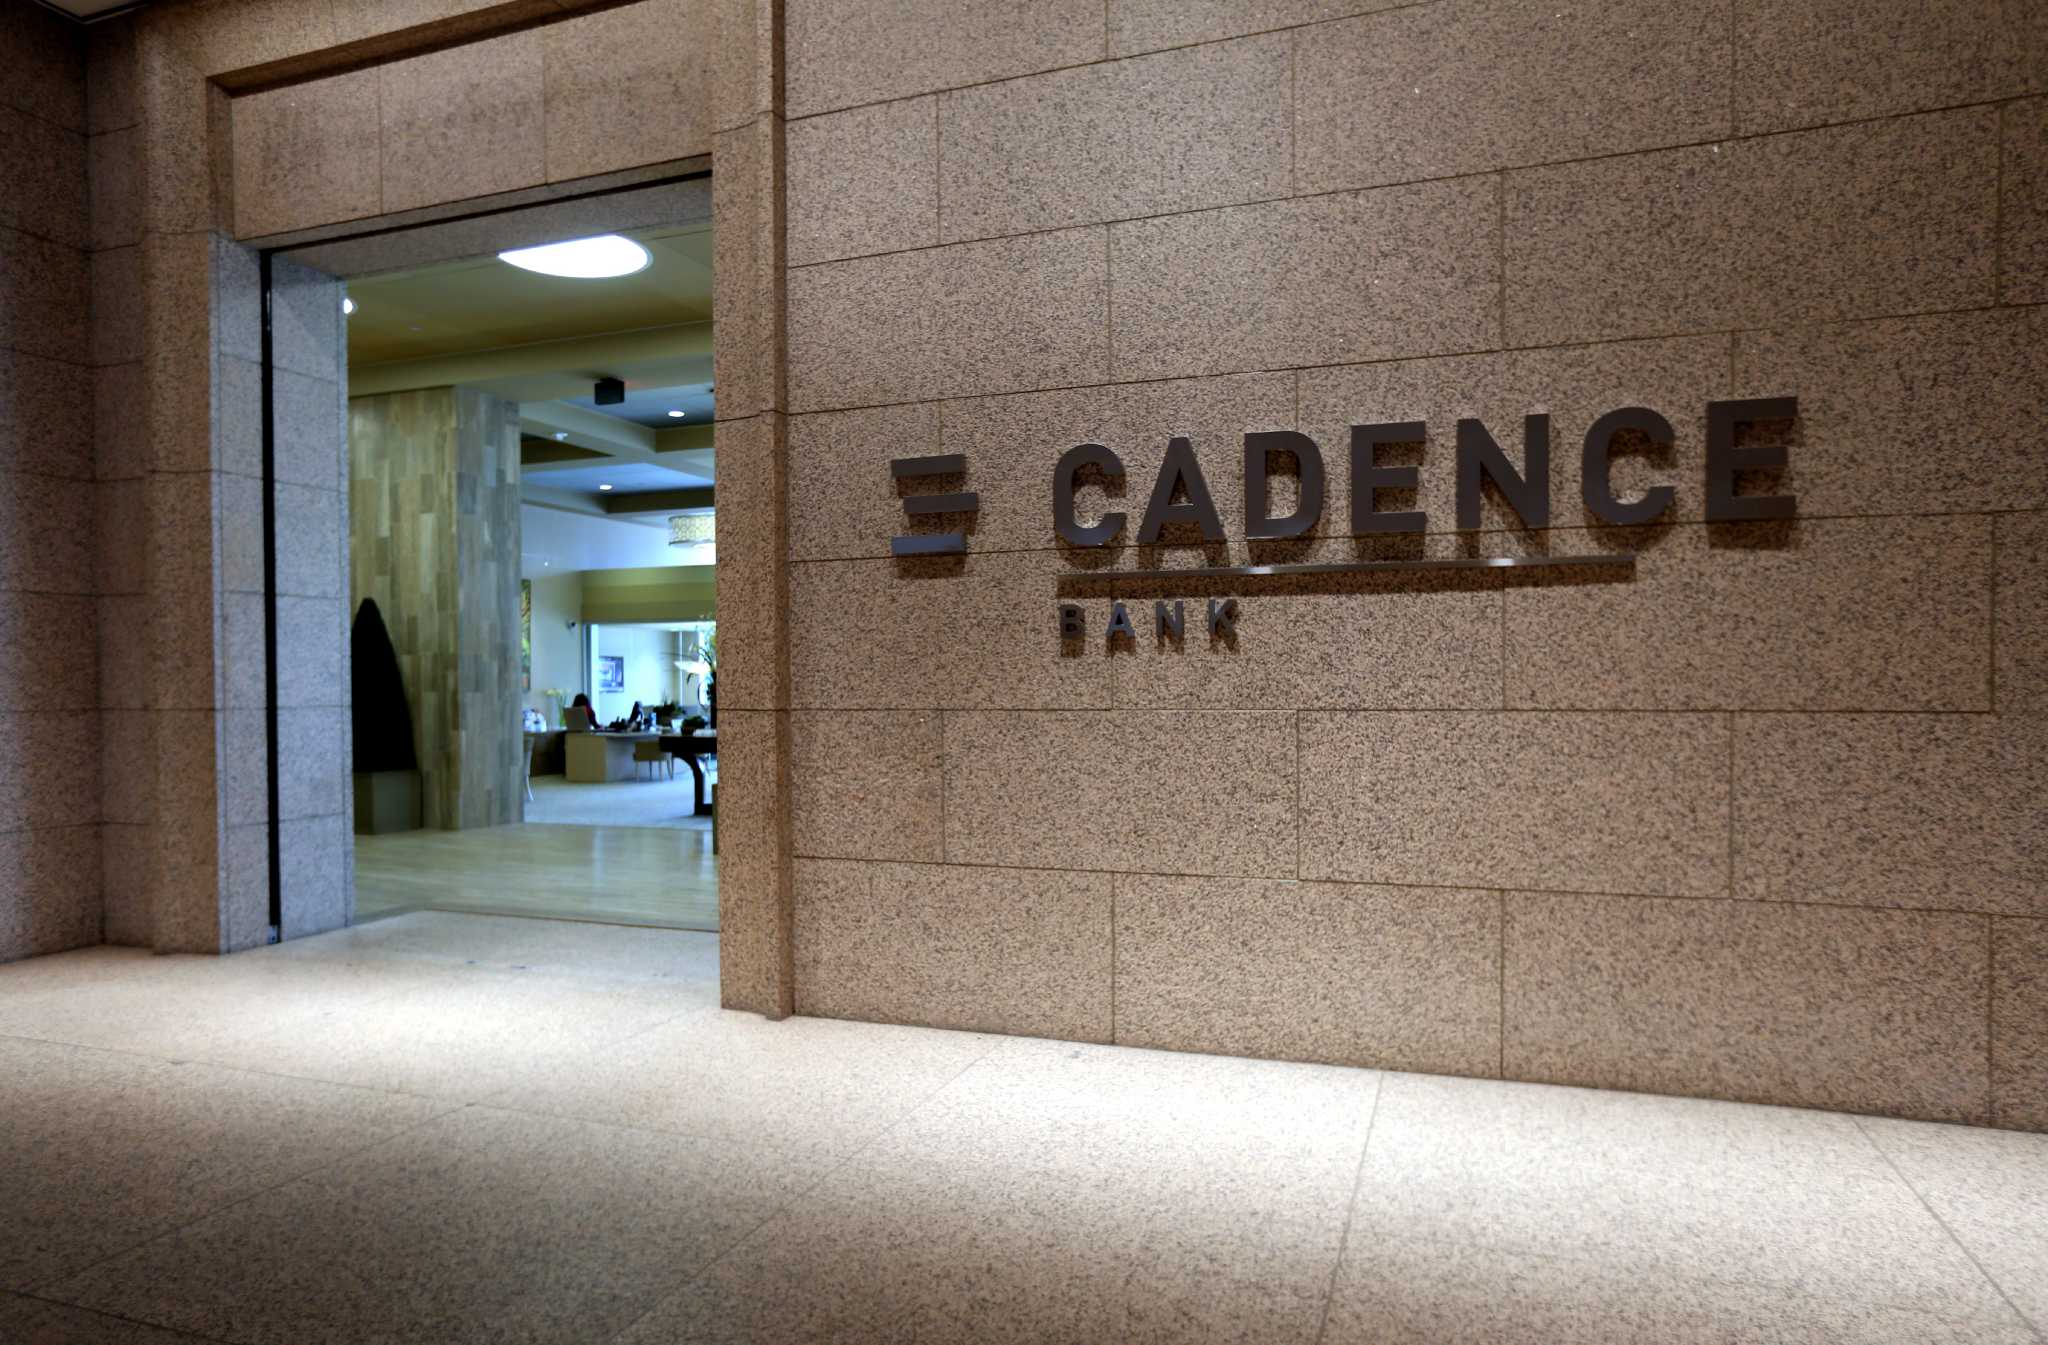 Cadence Bank To Provide Depository Services To Harris